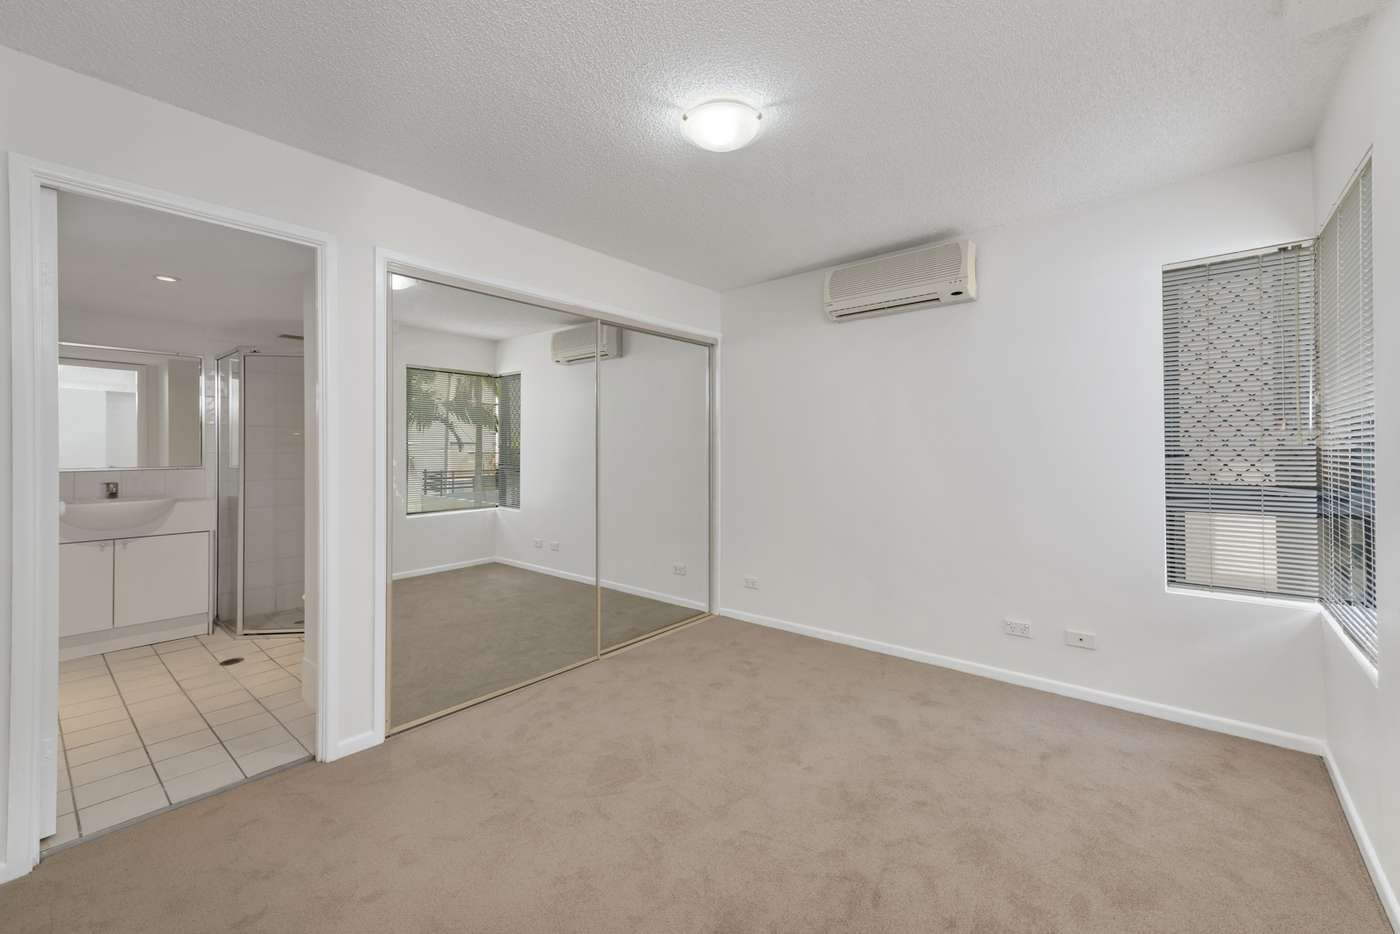 Sixth view of Homely unit listing, 33/7 Landsborough Terrace, Toowong QLD 4066